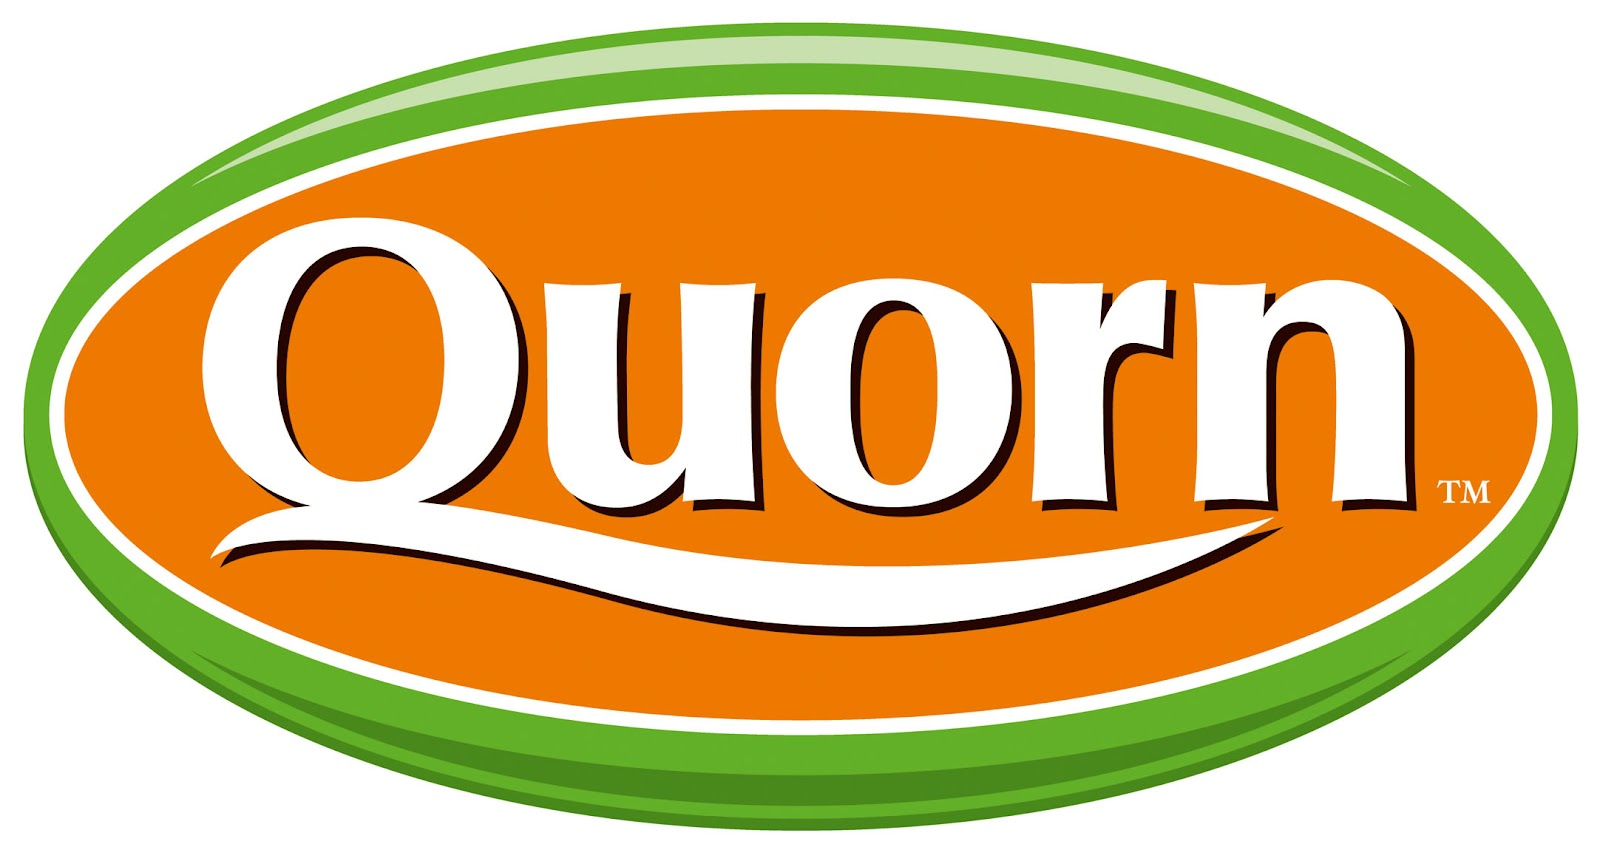 product study quorn vegetarian foods essay They refuse to eat anything that is an animal product are associated with vegetarian and vegan foods the most heard companies are quorn and the vegetarian.